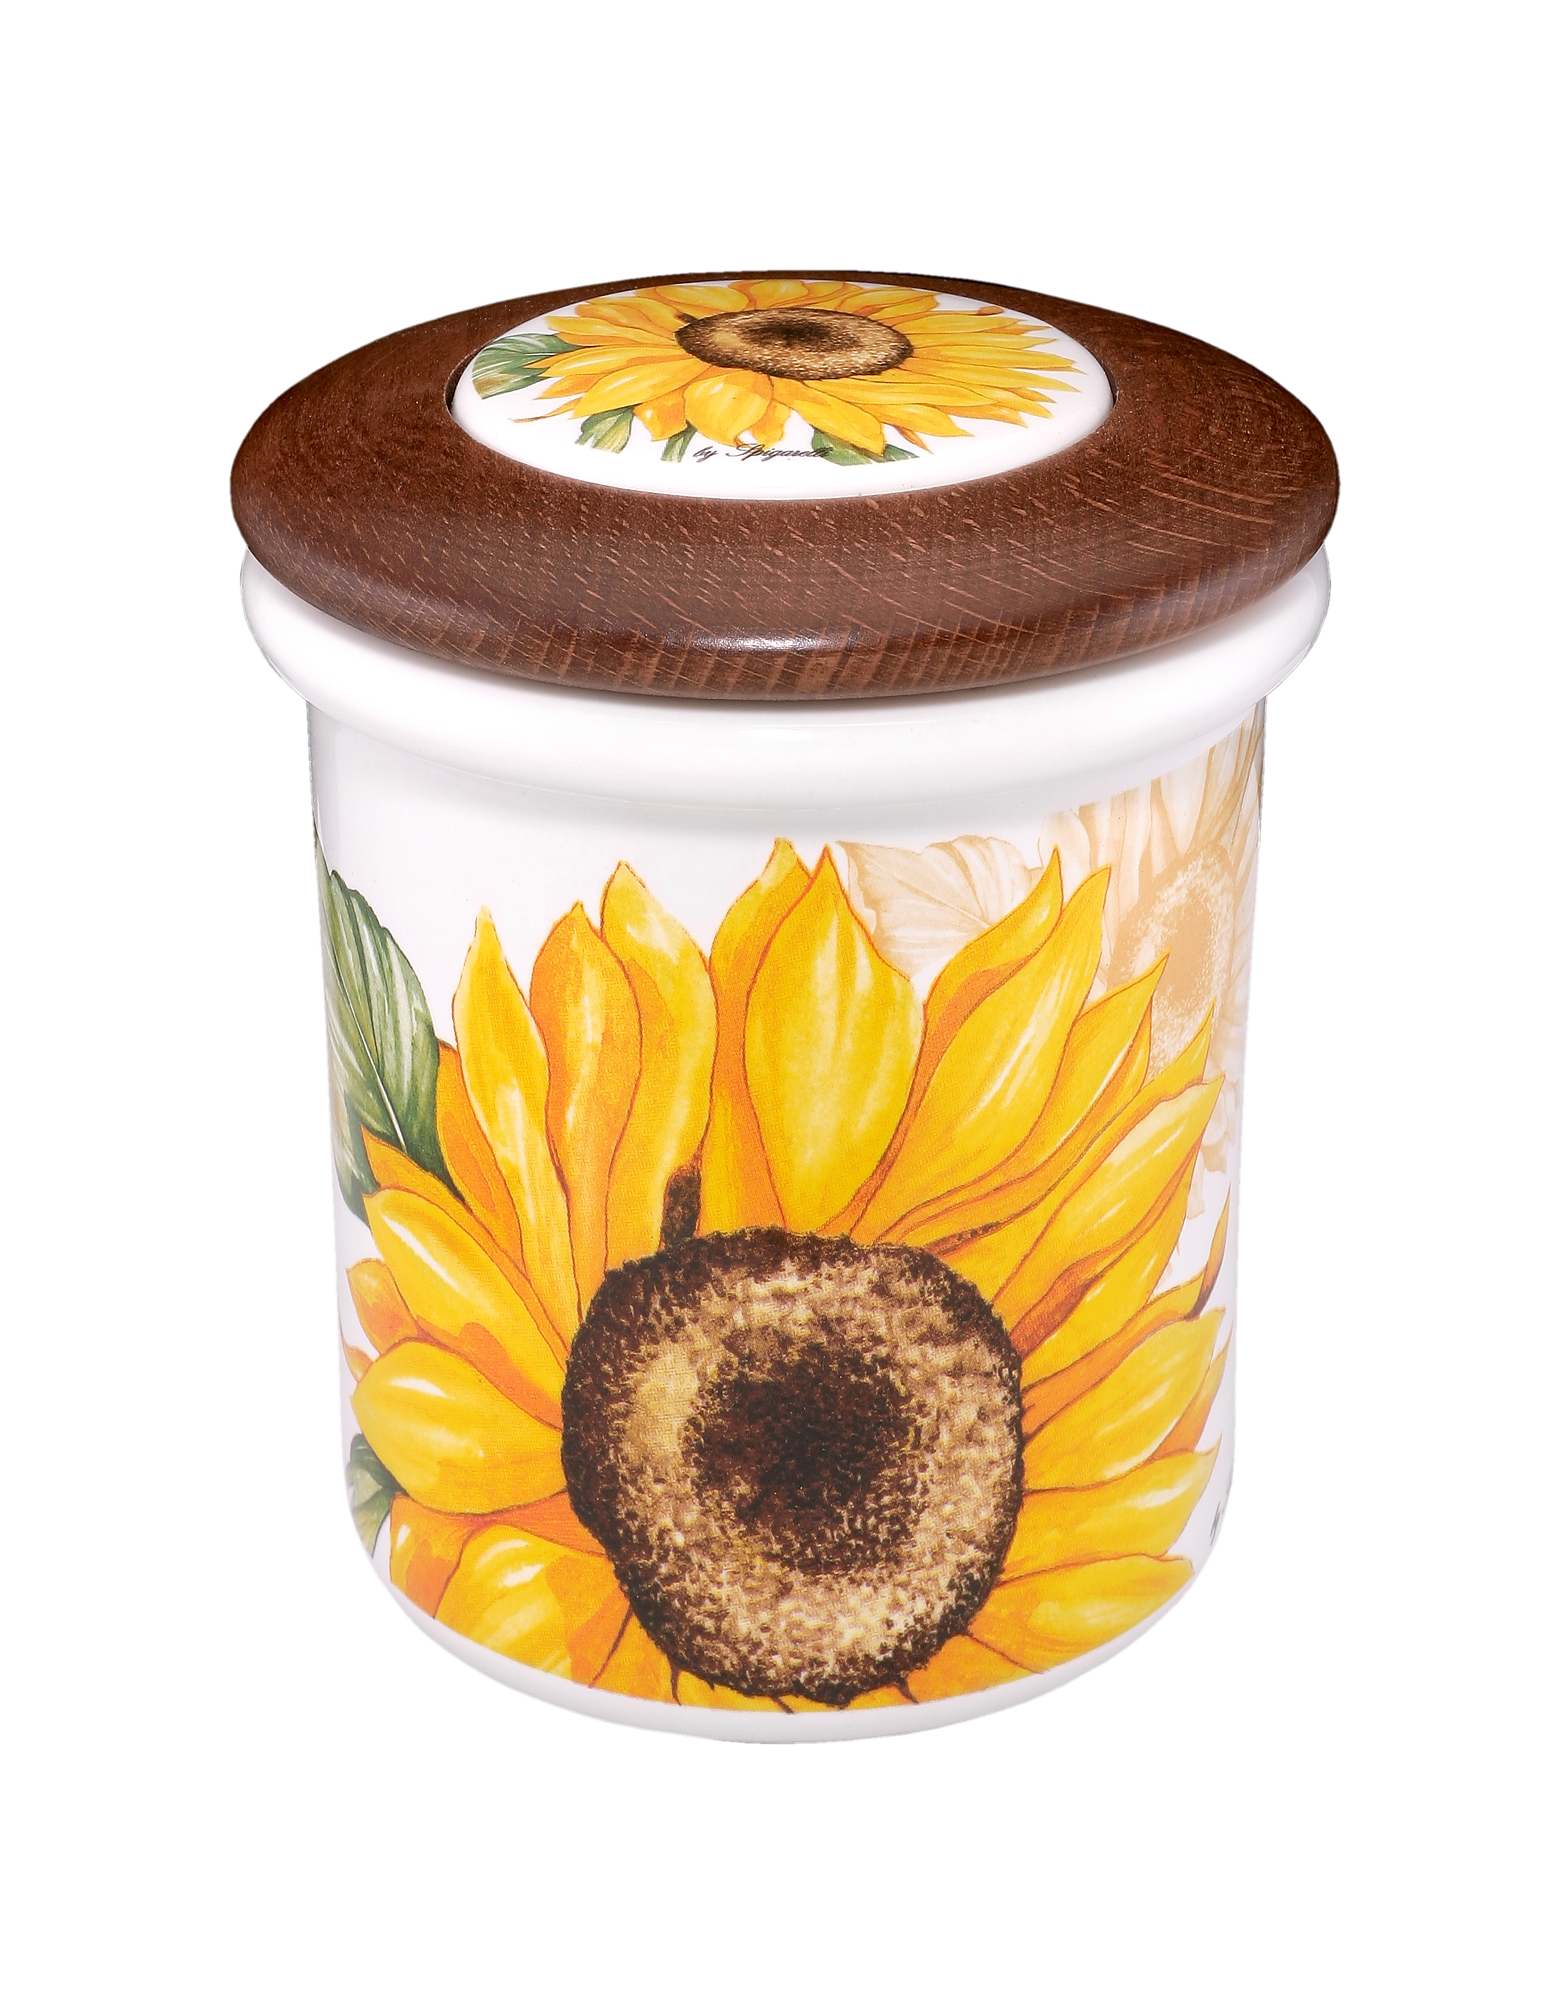 Spigarelli Kitchen & Dining, Sunflower Ceramic and Wood Jar